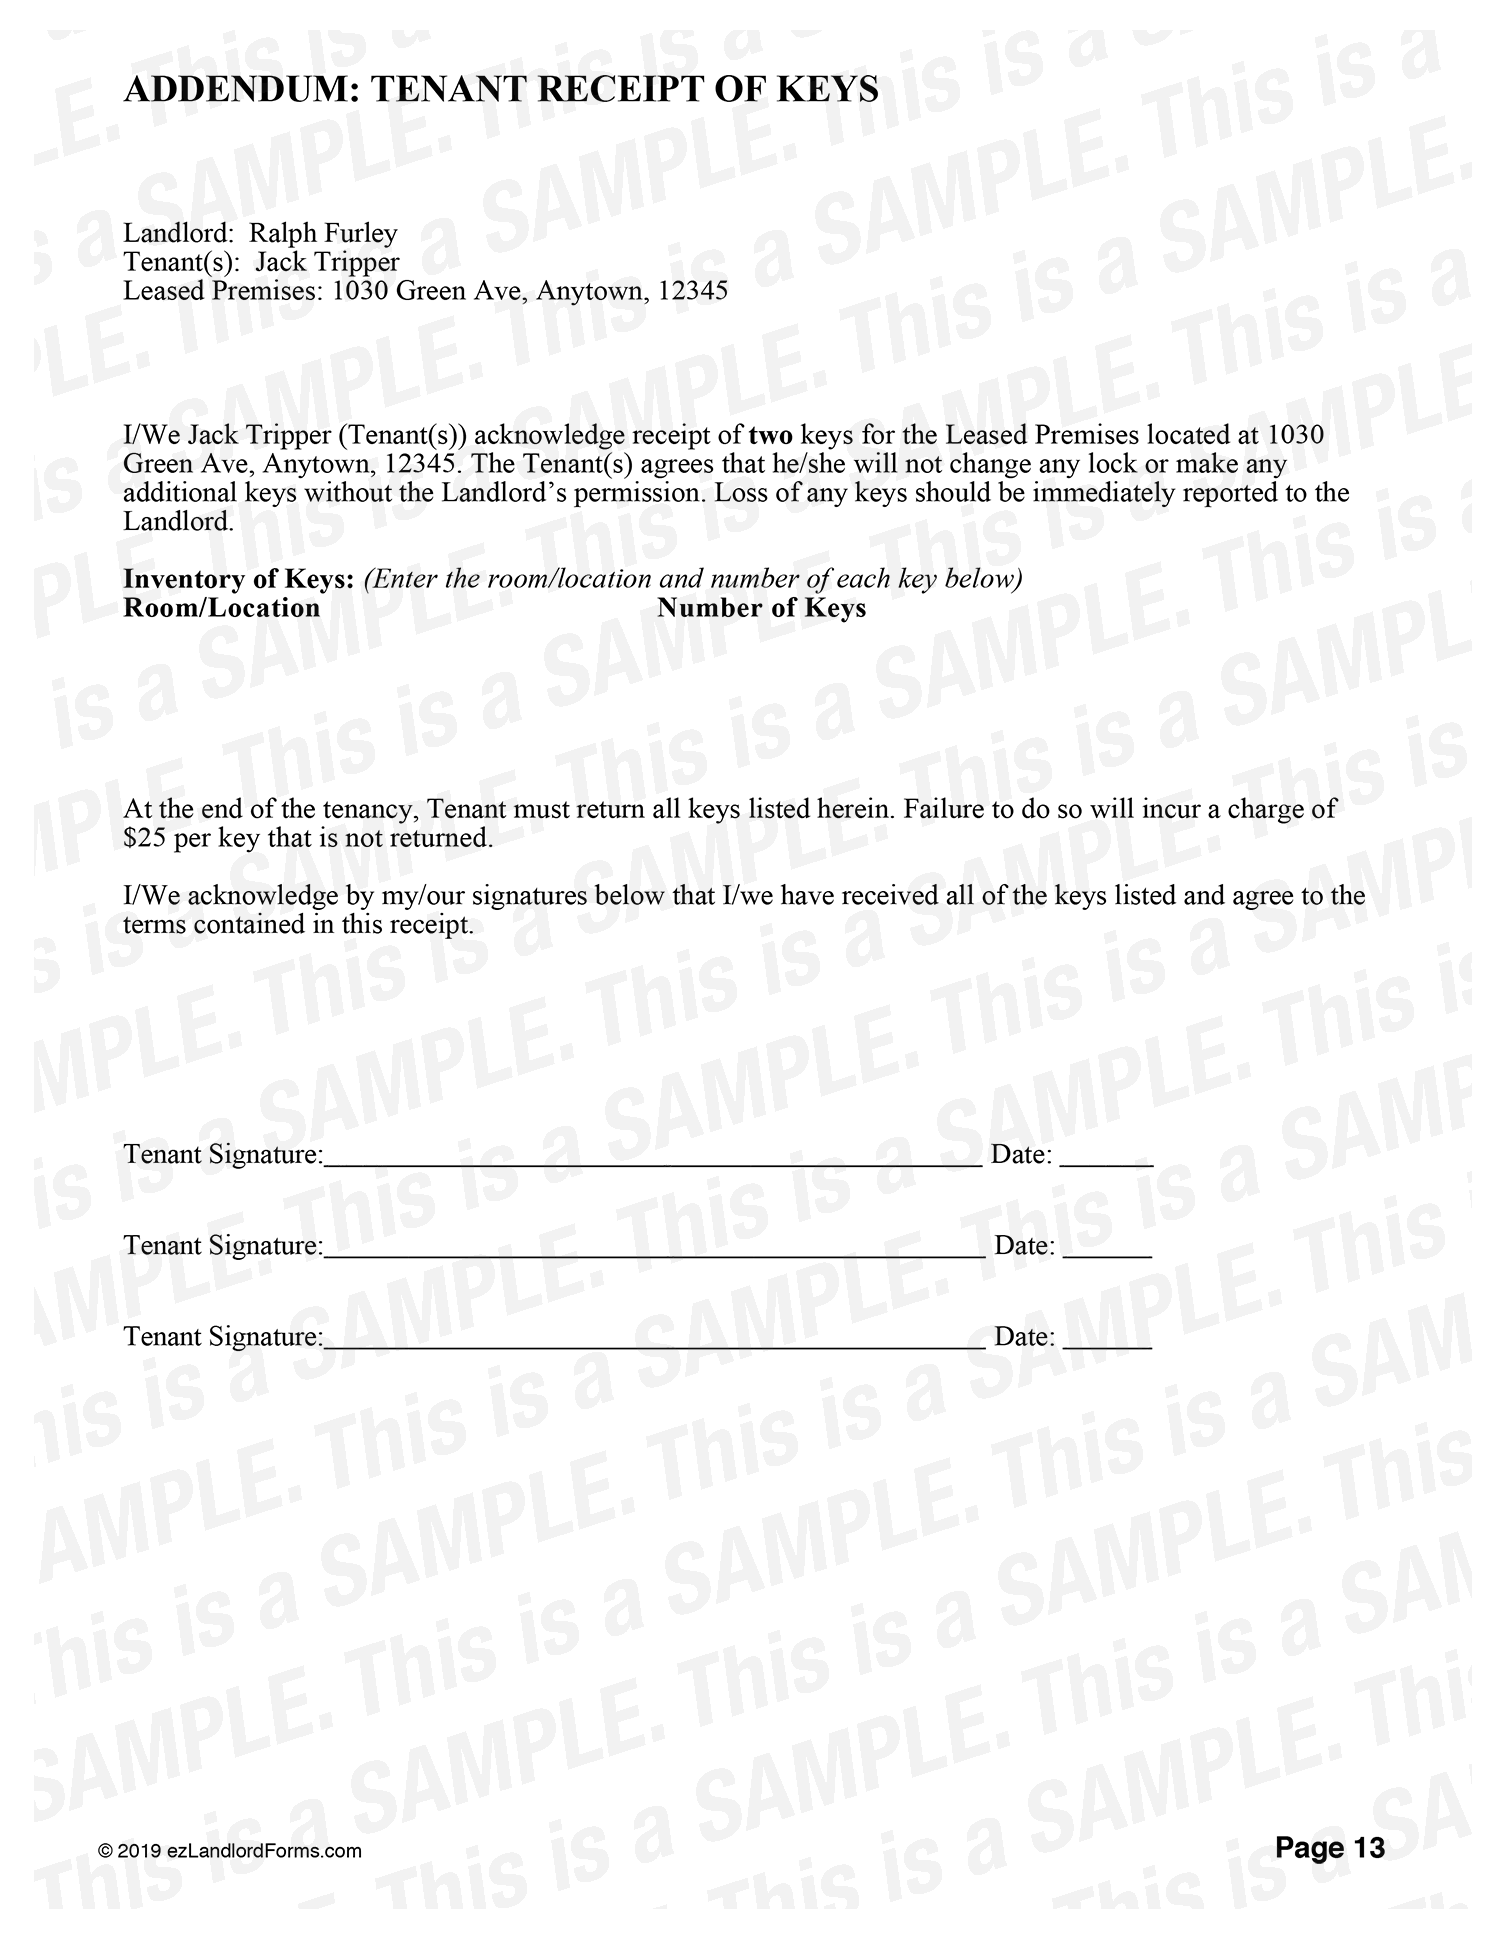 Maryland Lease Agreement With Esign Ezlandlordforms